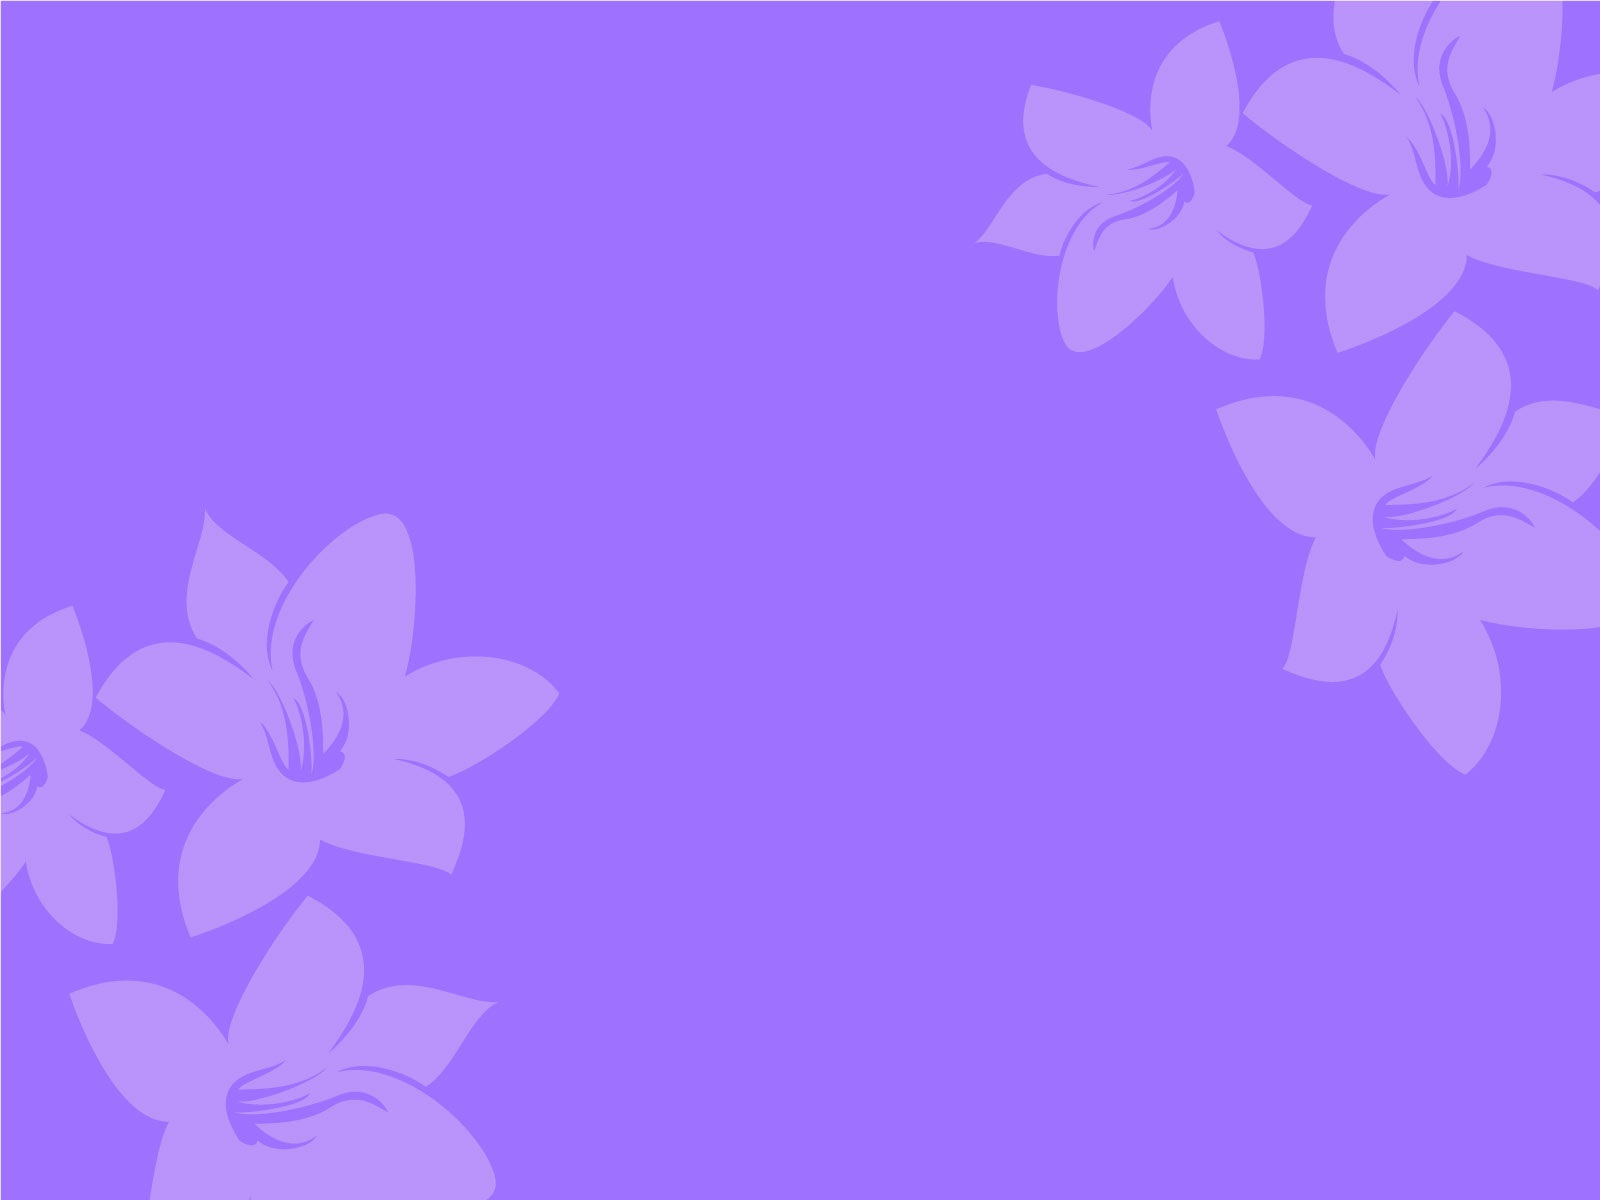 Free Purple Flower Background for Powerpoint Slides